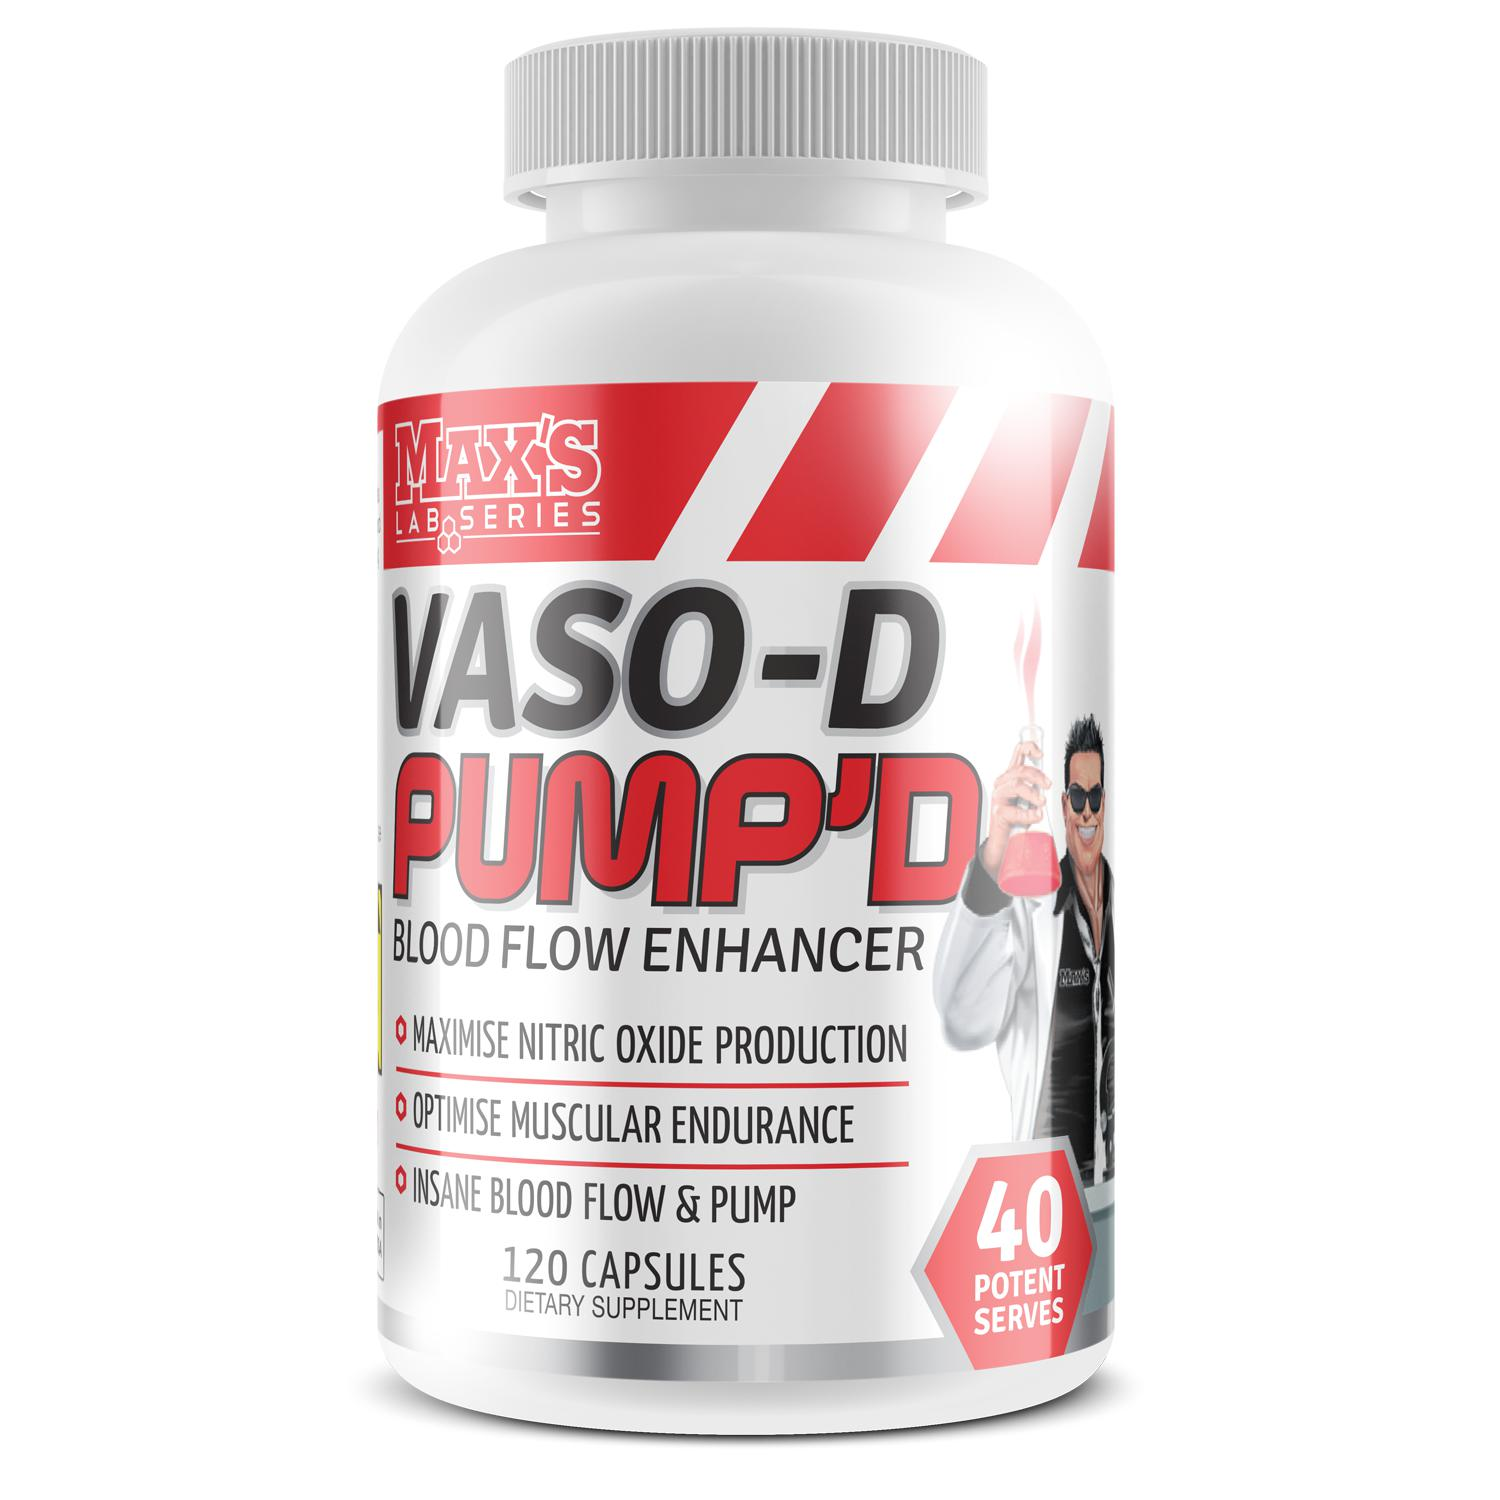 Maxs Vaso-D Pumped-Sports Nutrition - Nitic Oxide Booster-MAX-30 Serves-Thrive Health and Nutrition